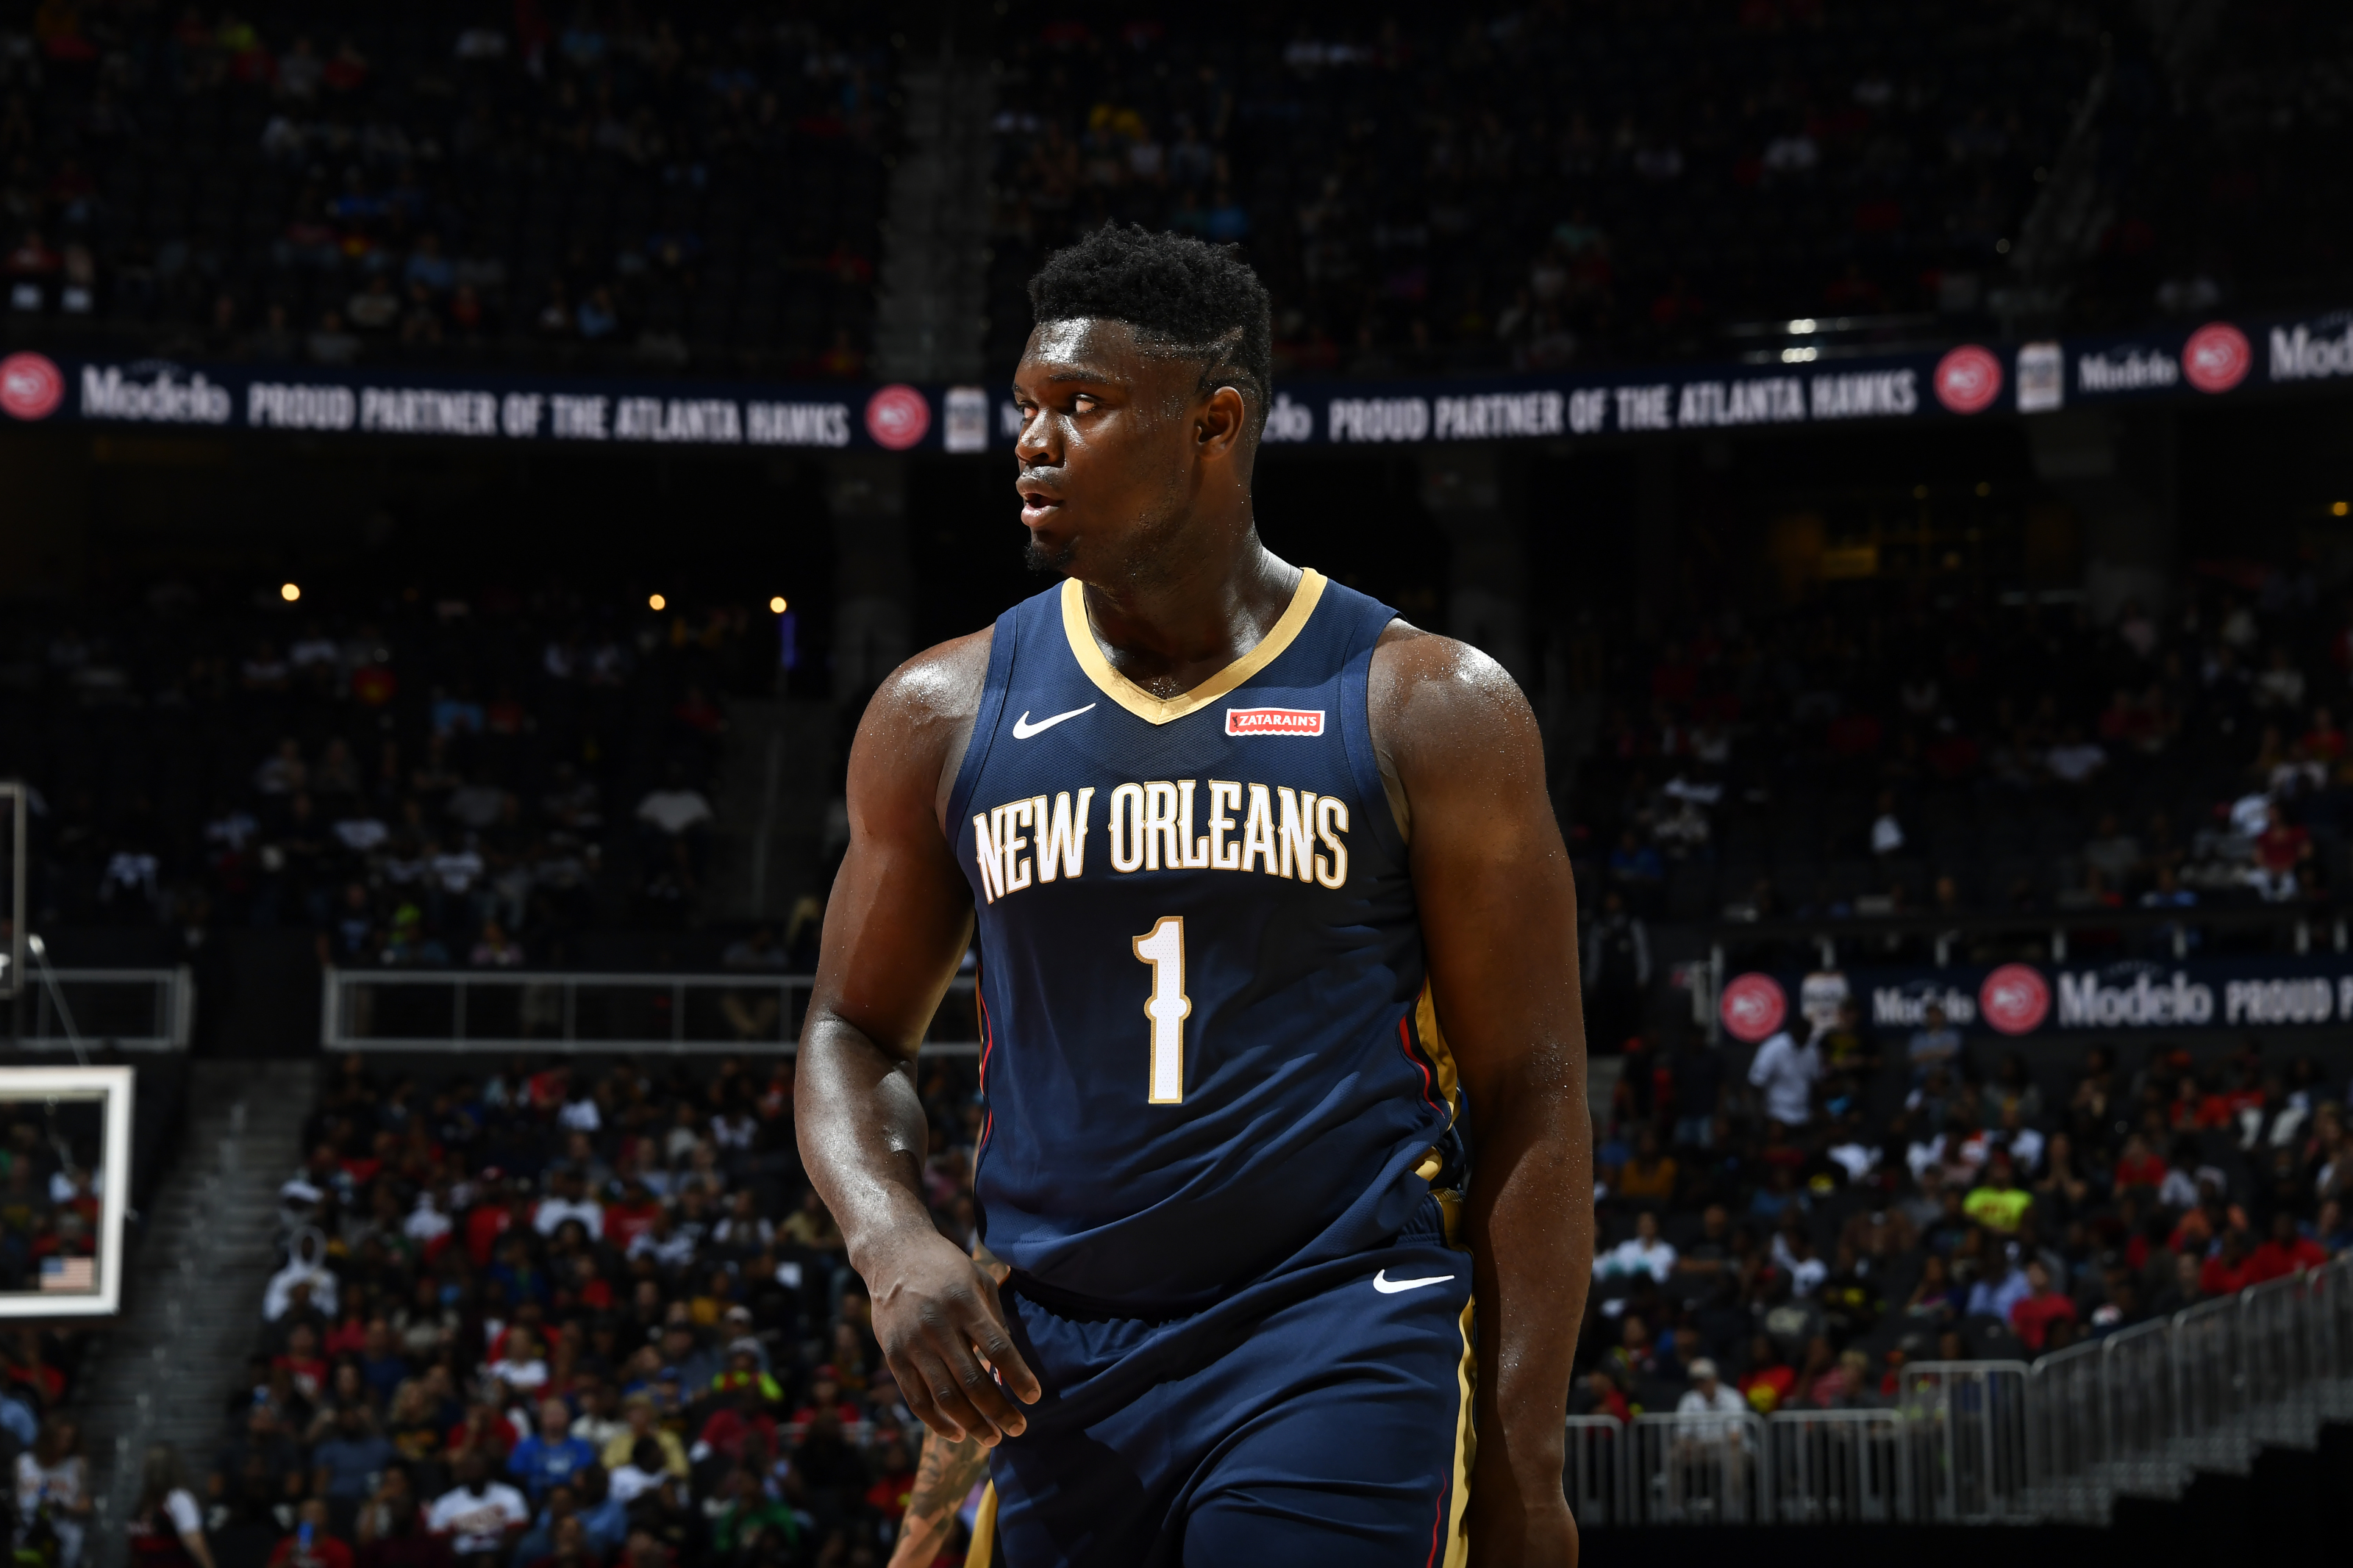 Nba Season Preview 2019 20 The 5 Biggest Questions For The New Orleans Pelicans